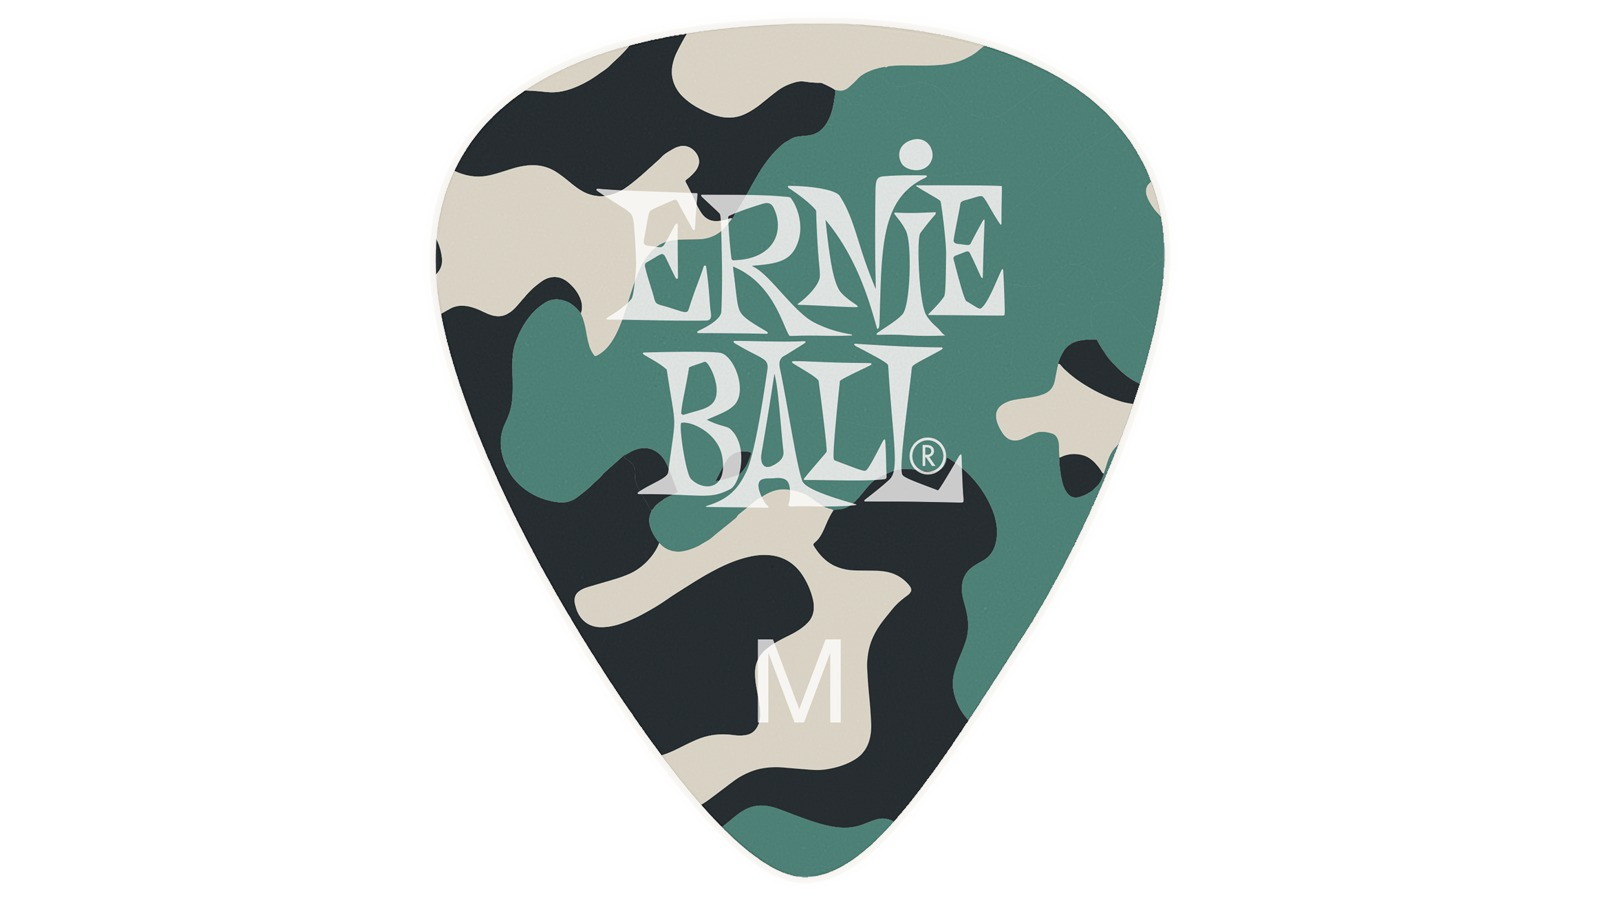 Ernie Ball EB9222 Celluloid Picks Camo 12er Set Medium